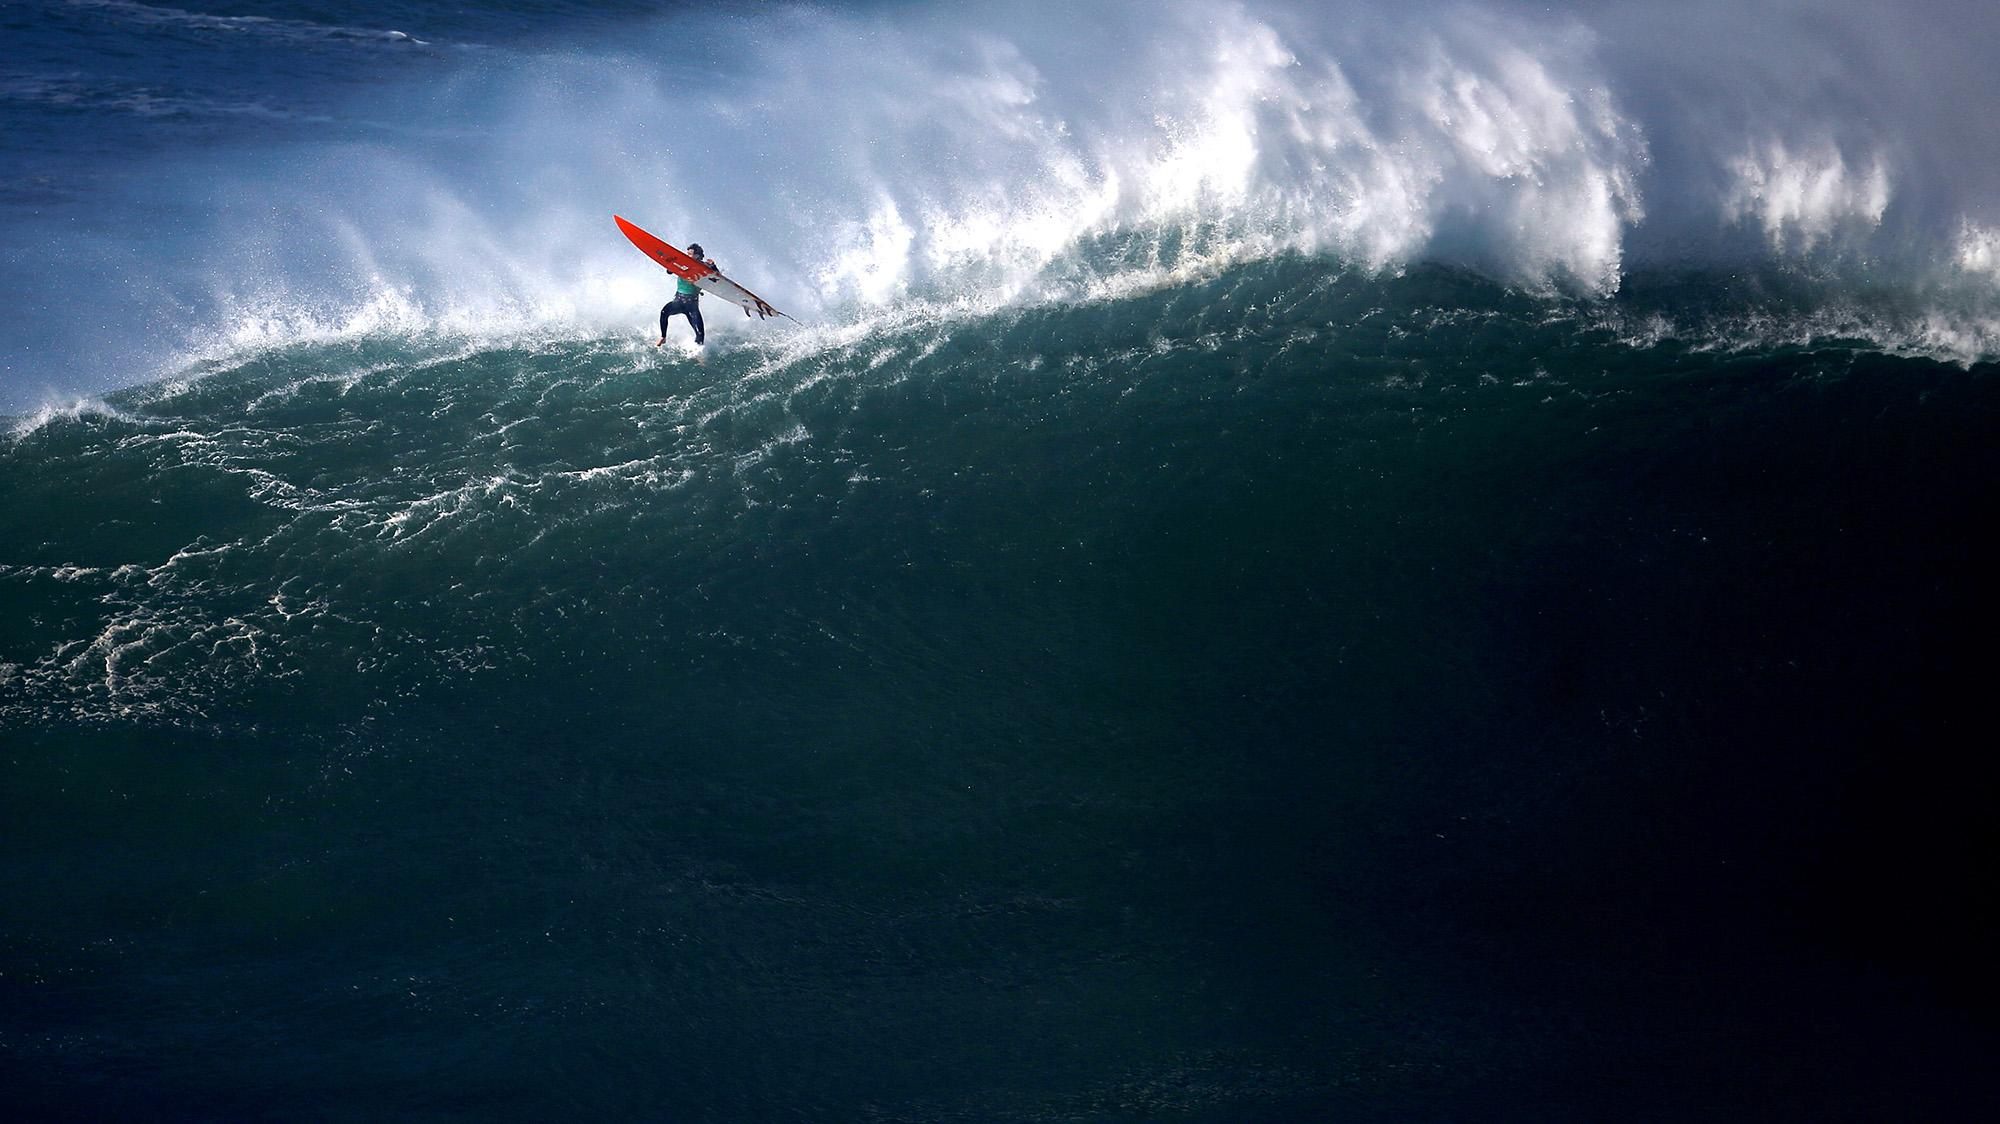 <p>Big-wave surfer Tom Butler of Britain drops in on a large wave during Nazare Challenge championship at Praia do Norte in Nazare, Portugal on Dec. 20 2016. (Photo: Rafael Marchante/Reuters) </p>